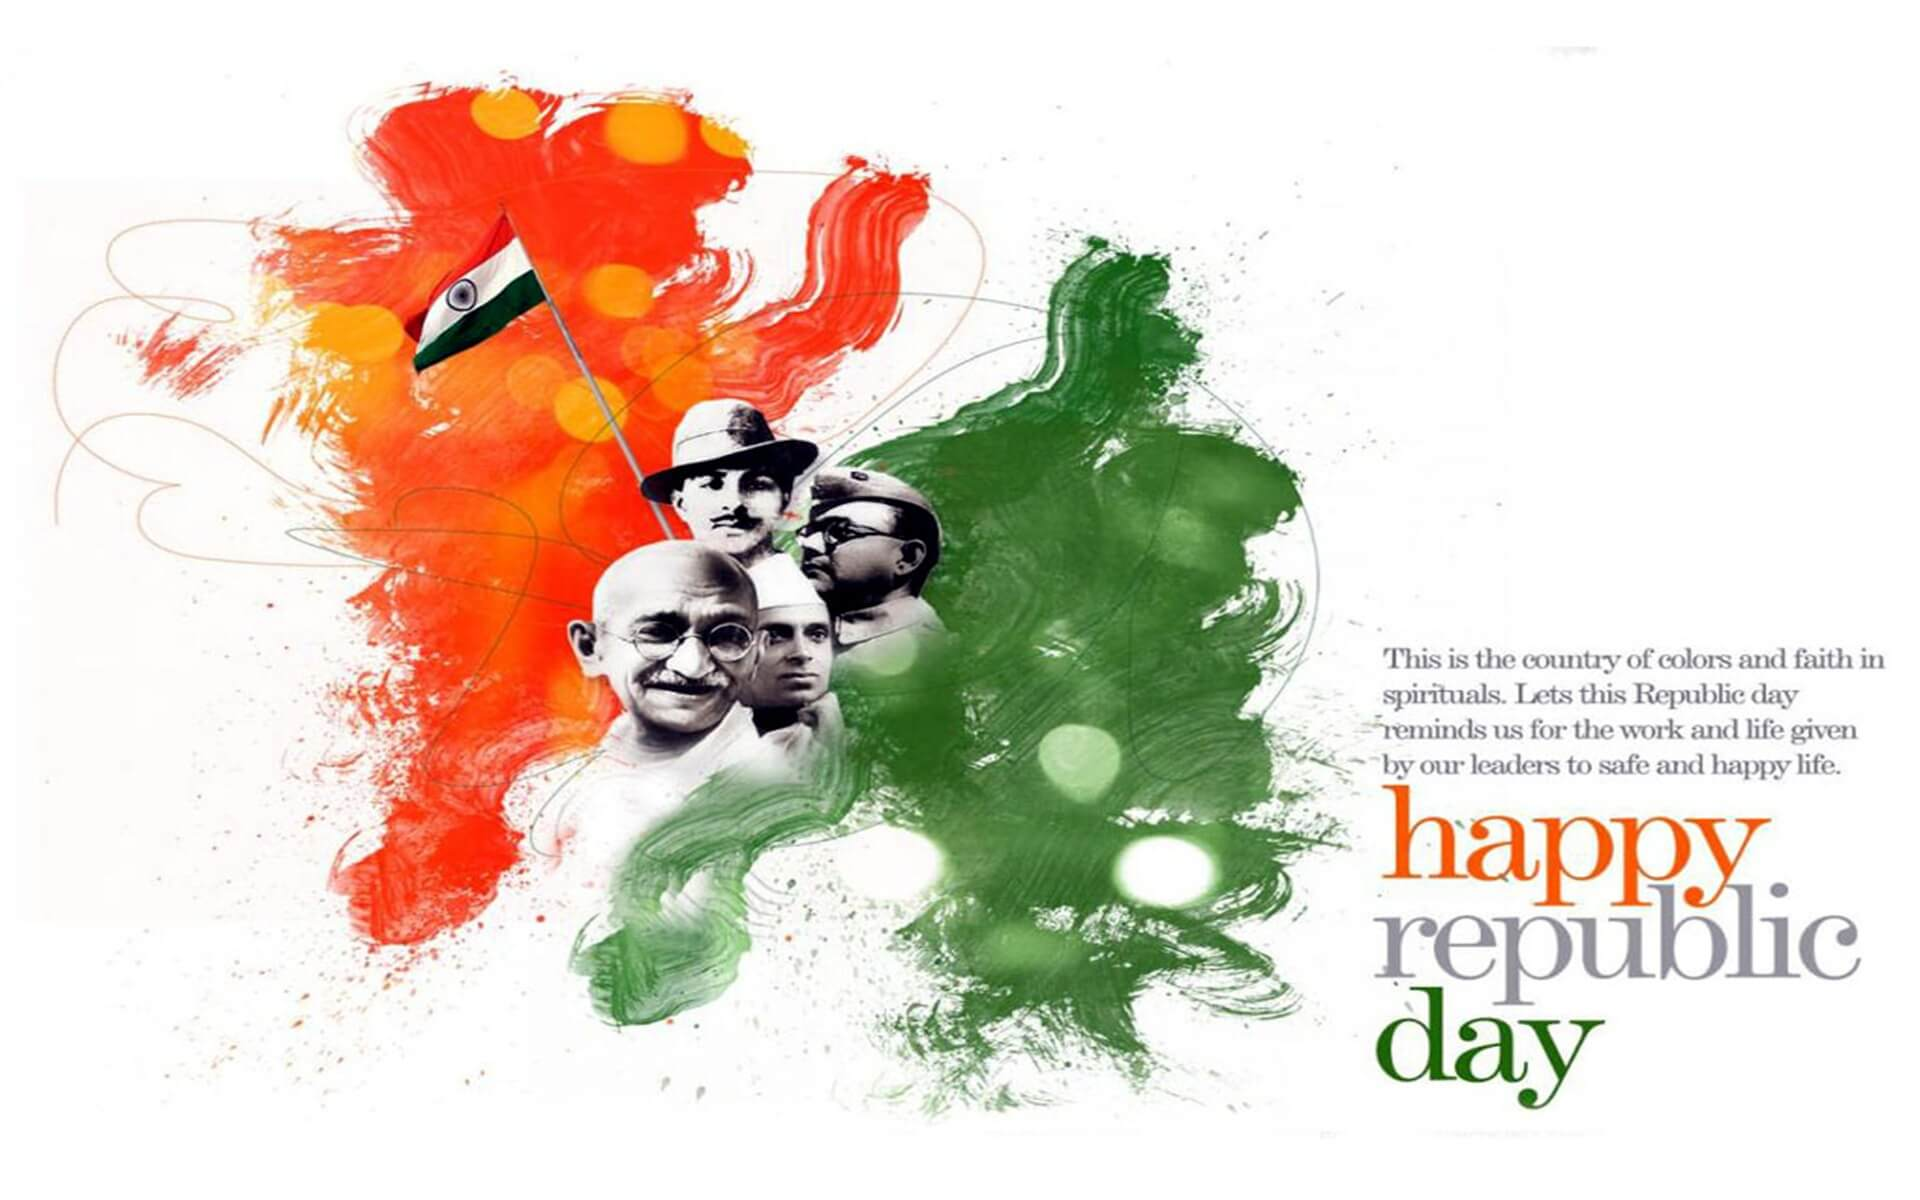 Happy Republic Day Wishes India January 26 Freedom Fighters Hd Pc 1920x1200